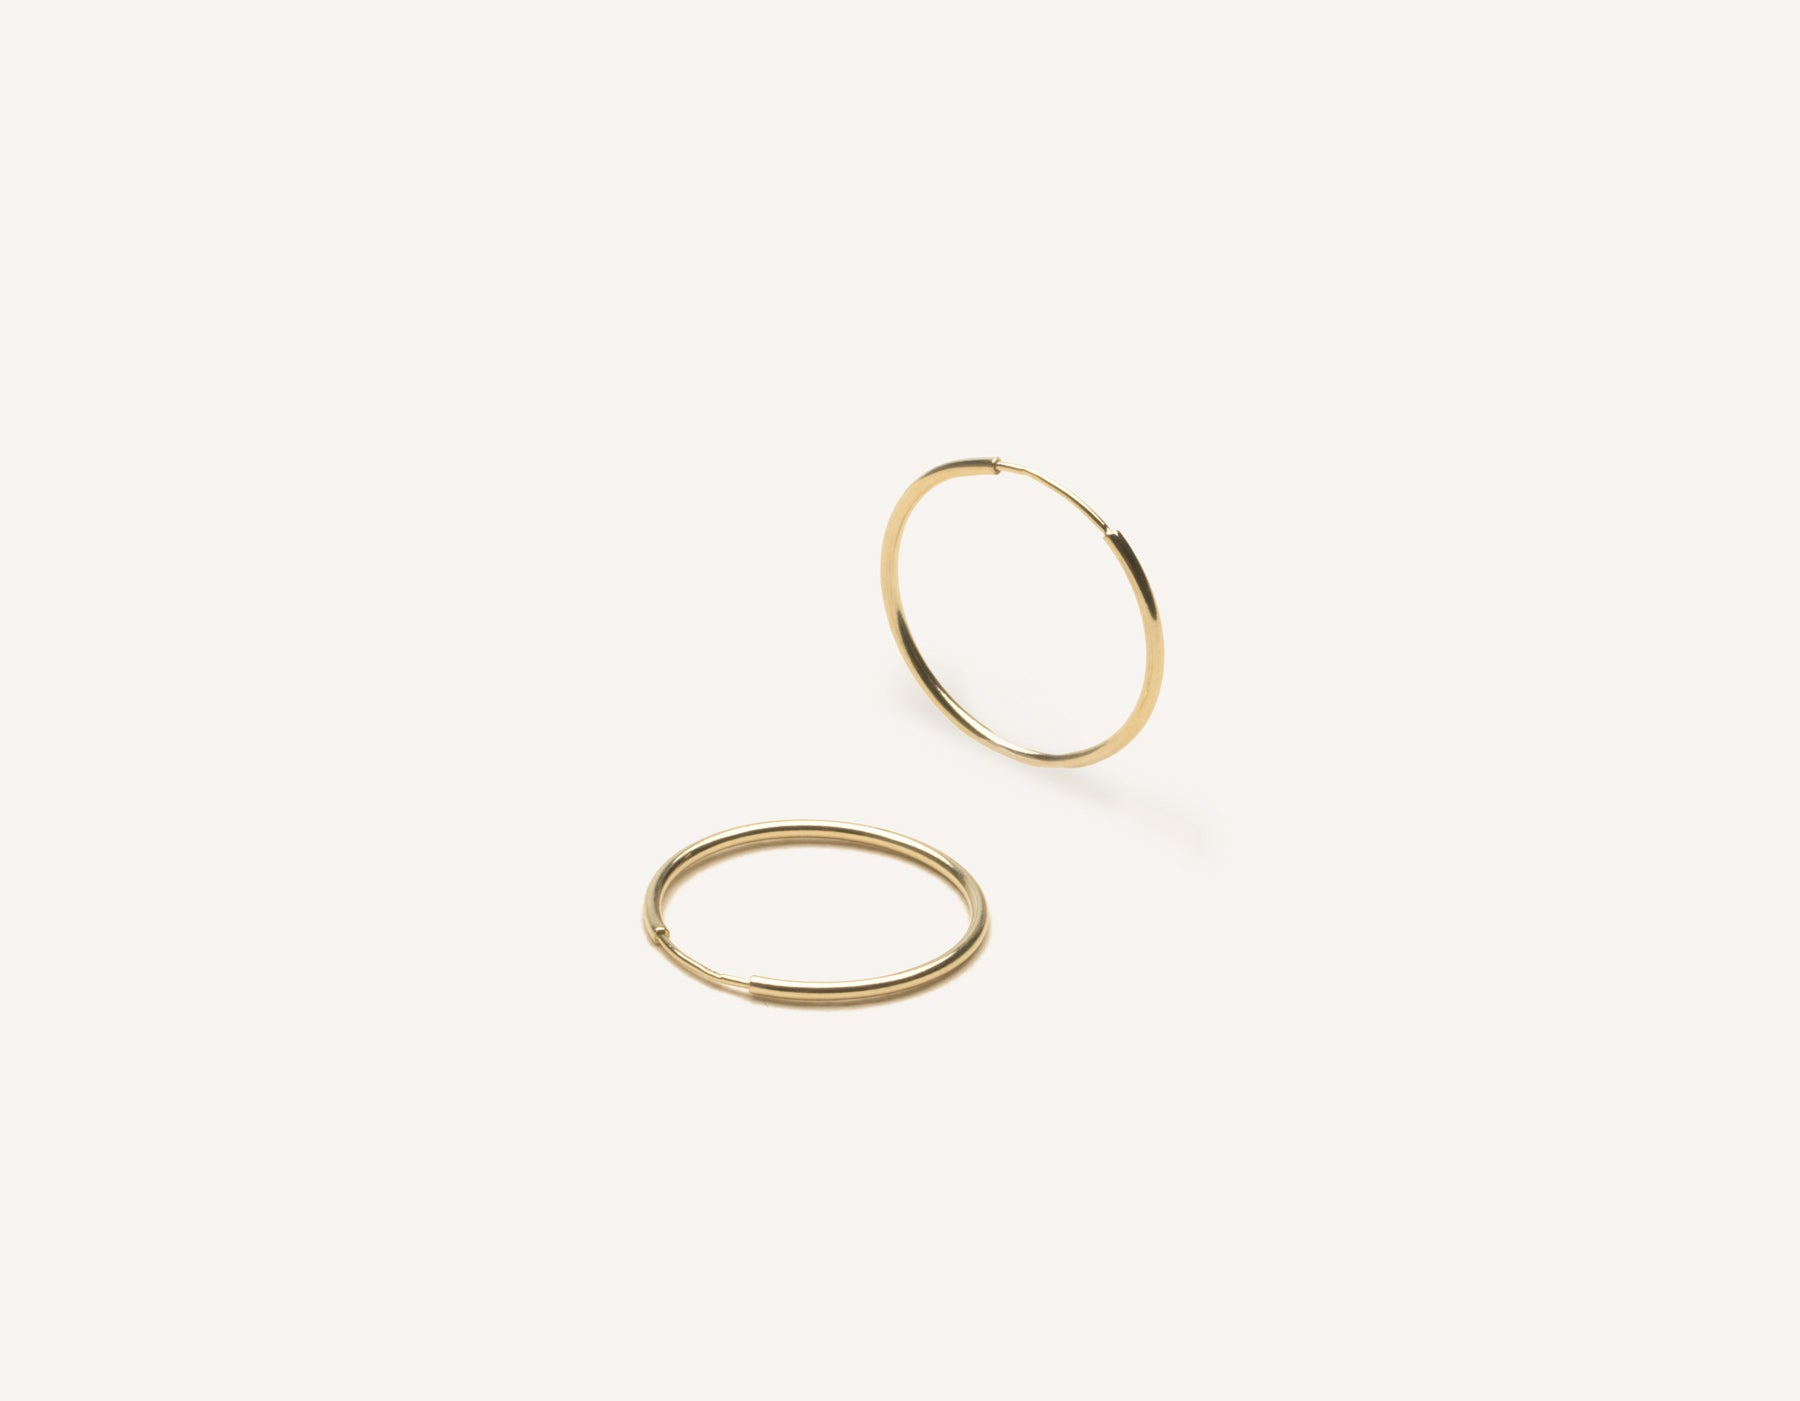 Simple classic thin Medium Lightweight Hoops 14k solid gold Vrai and Oro minimalist jewelry, 14K Yellow Gold